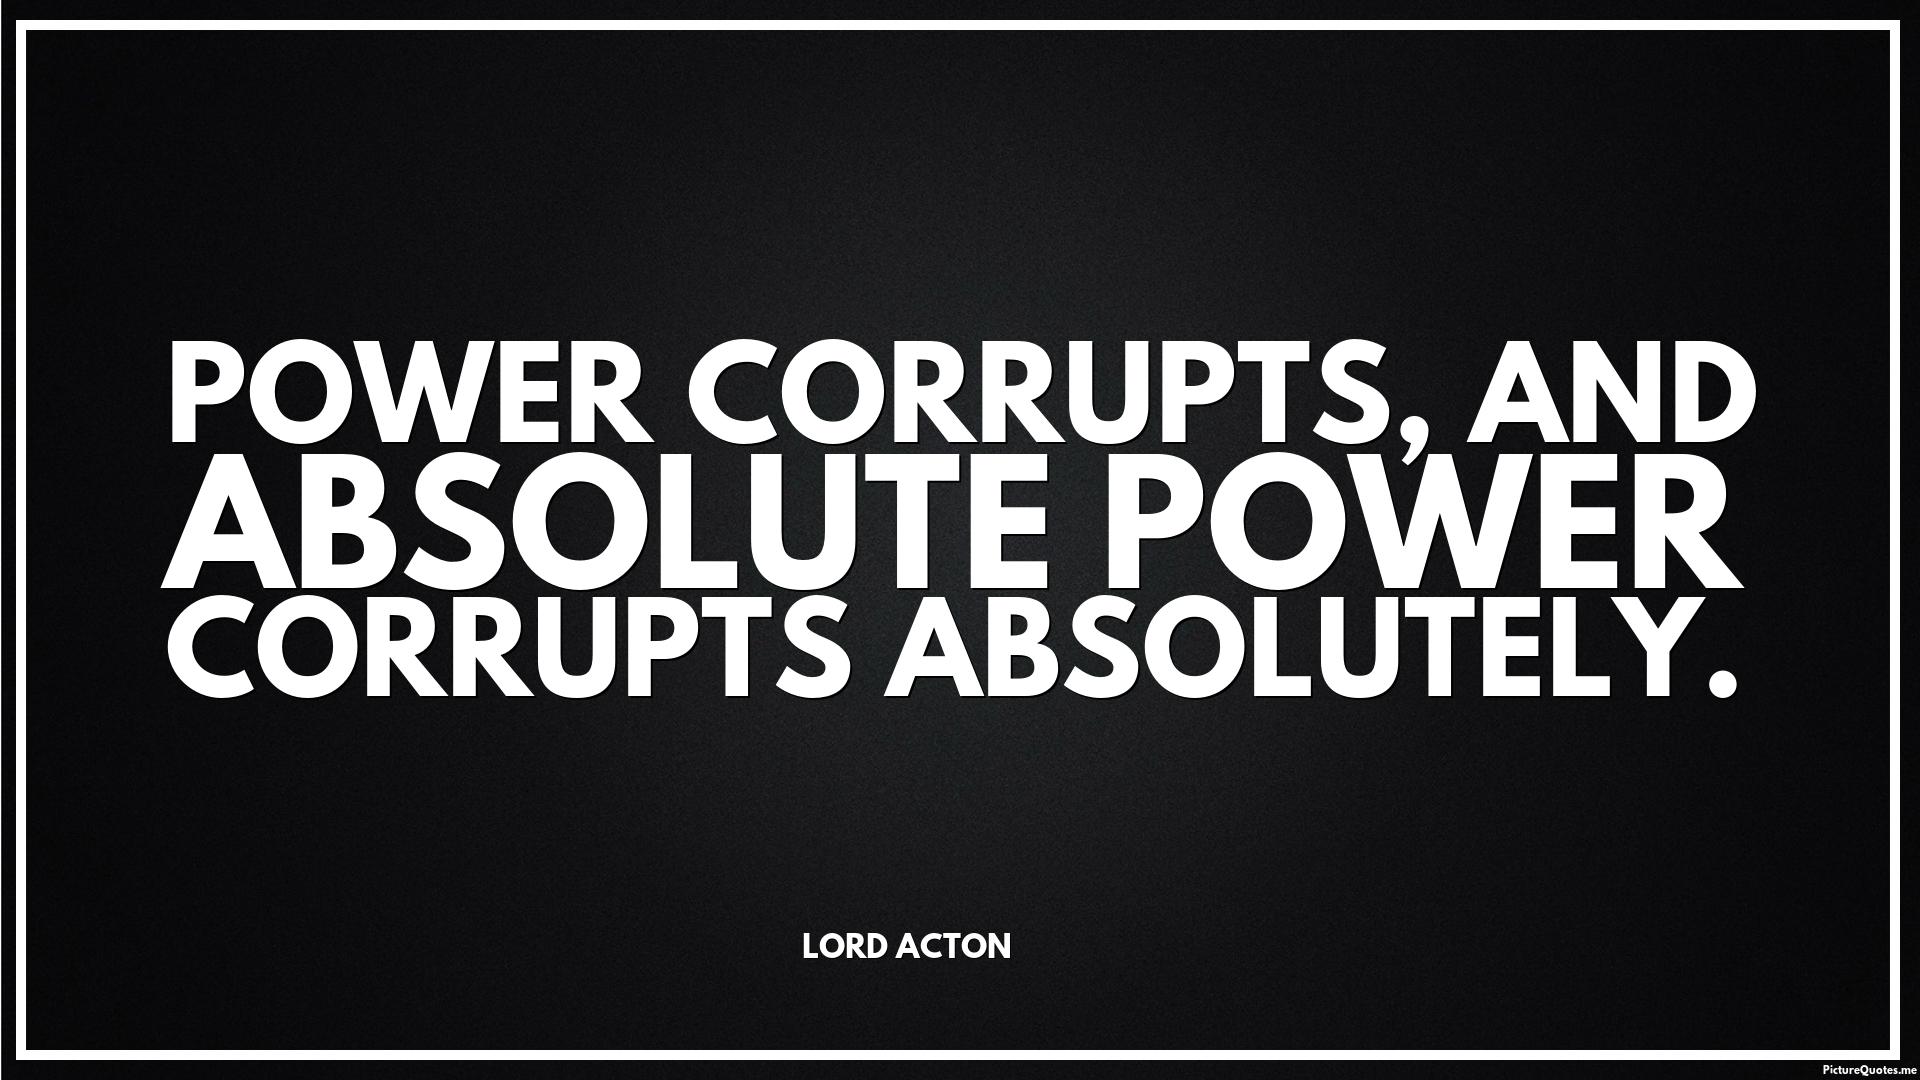 power corrupts and absolute power corrupts absolutely essay Absolute power corrupts absolutely essays: over 180,000 absolute power corrupts absolutely essays, absolute power corrupts absolutely term papers, absolute power corrupts absolutely research paper, book reports 184 990 essays.